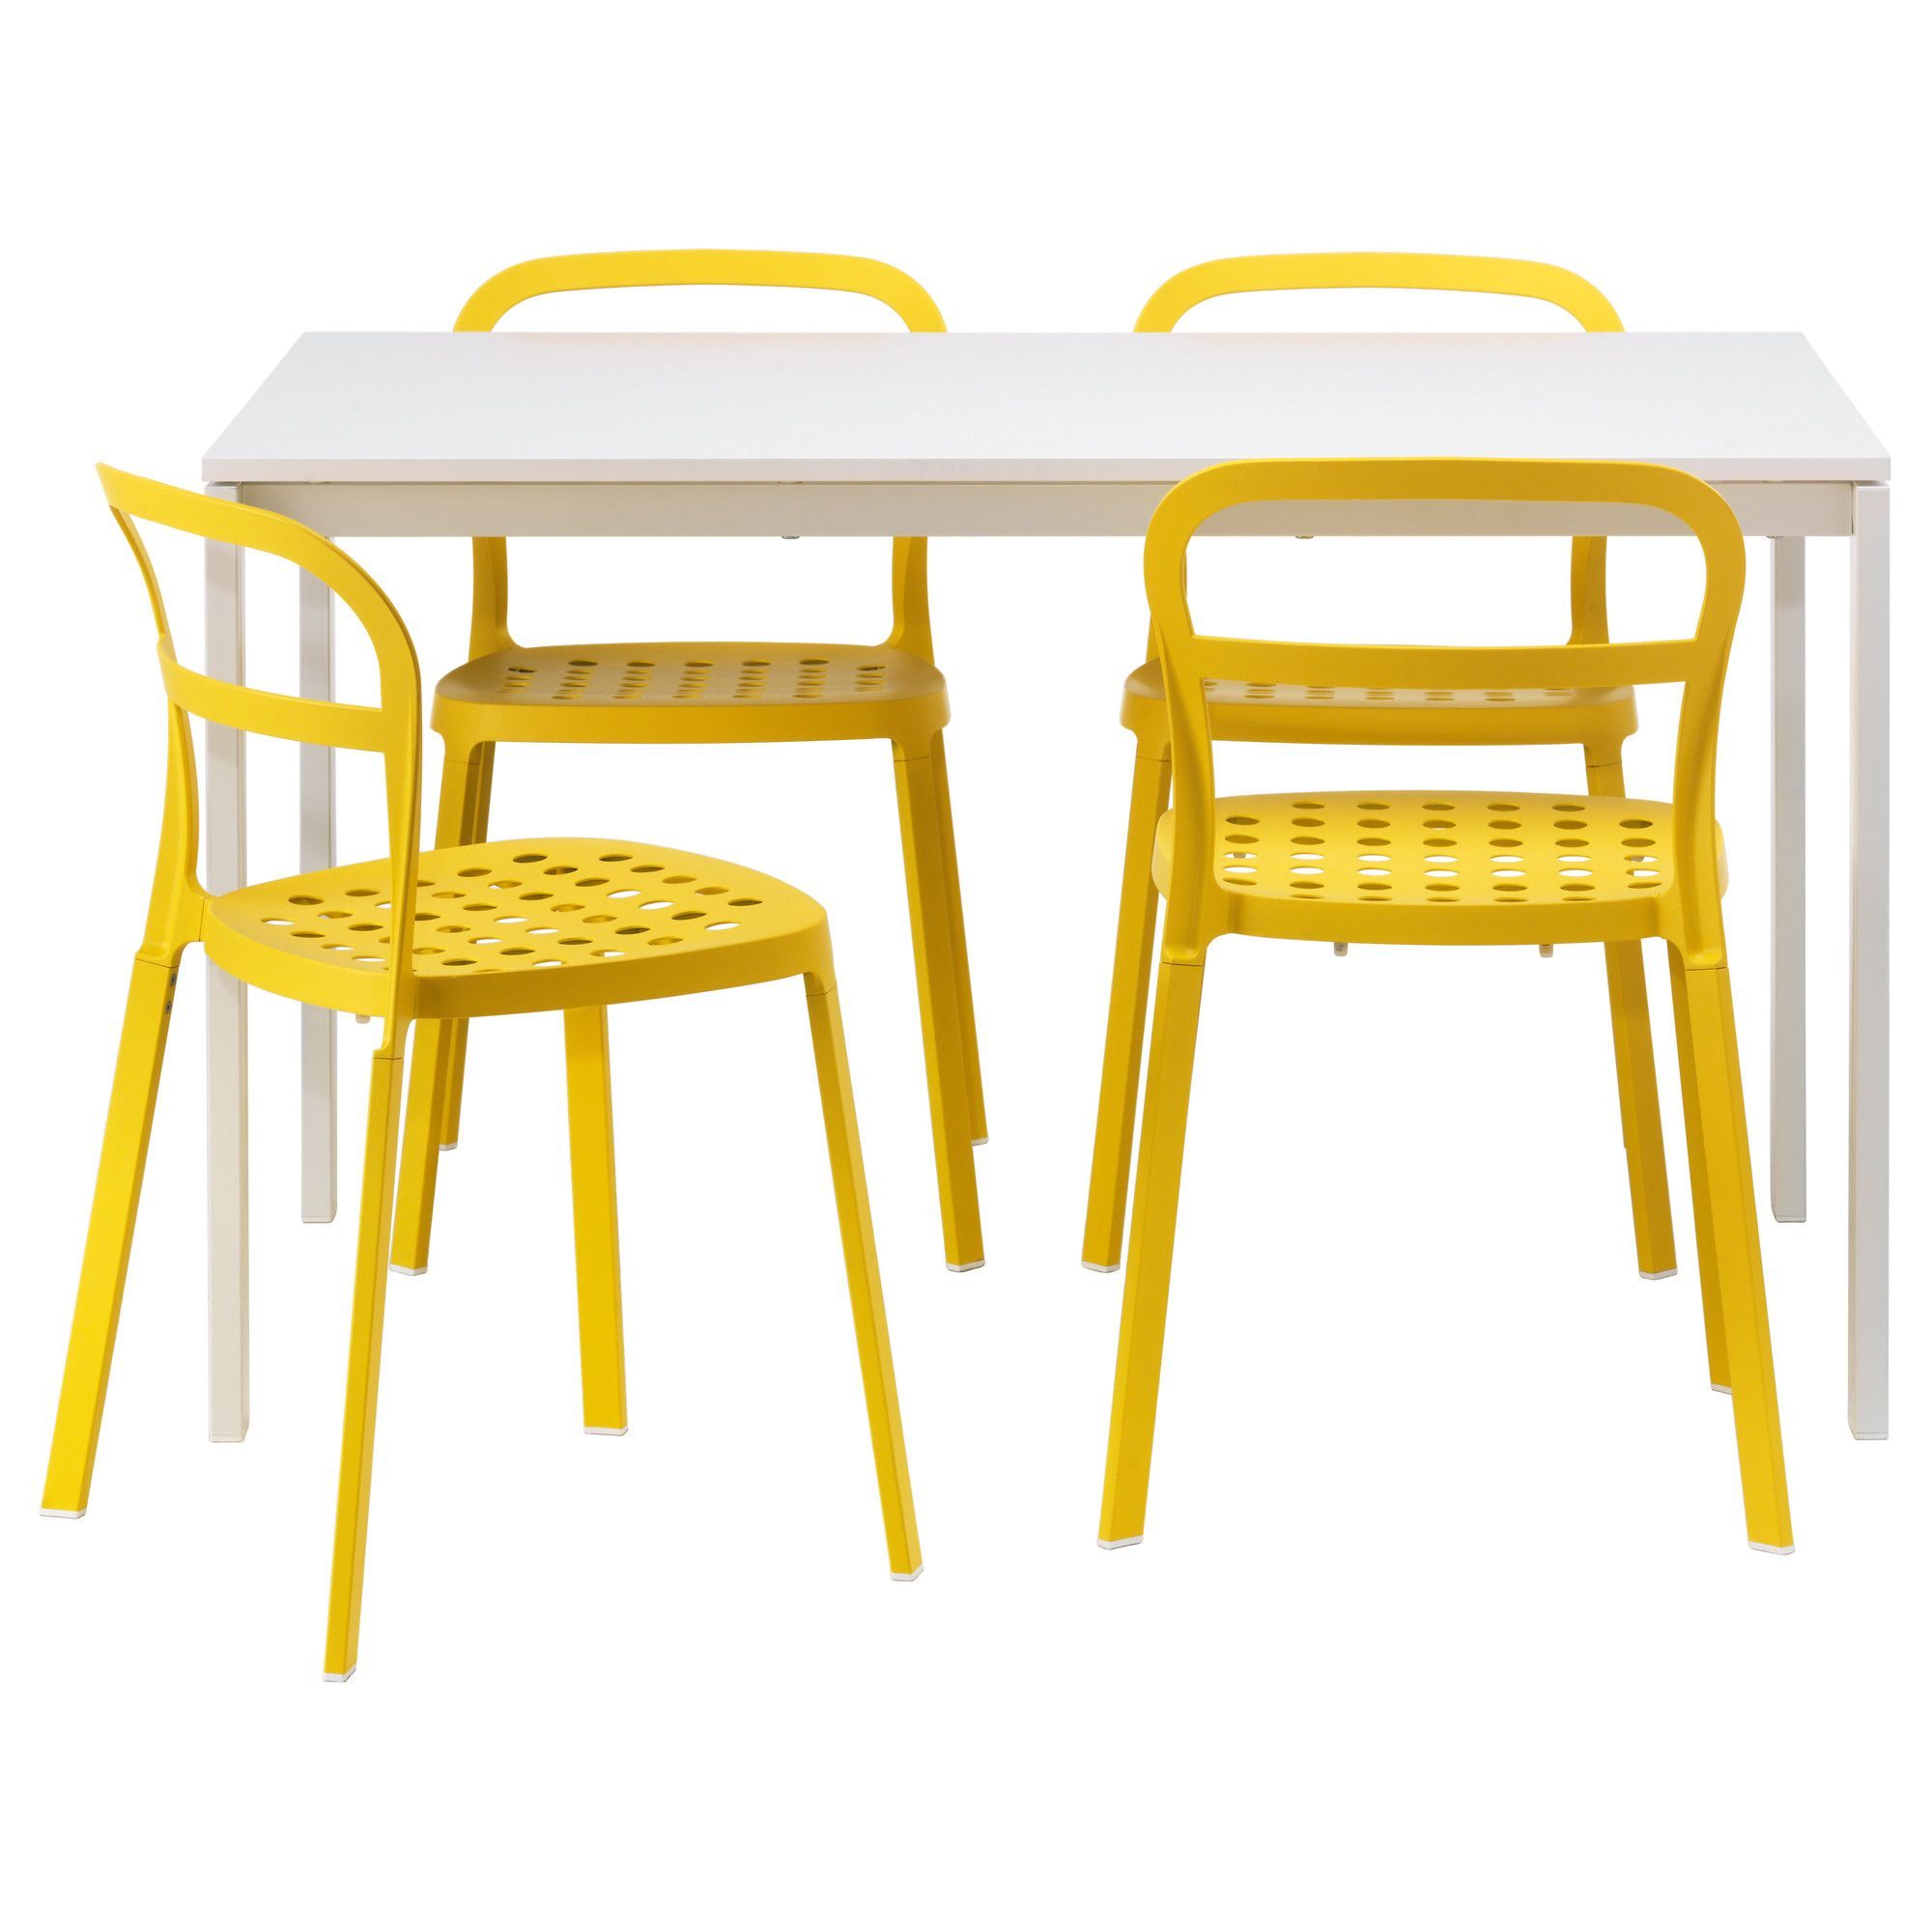 Melltorp reidar table et 4 chaises ikea local for Table 8 personnes ikea